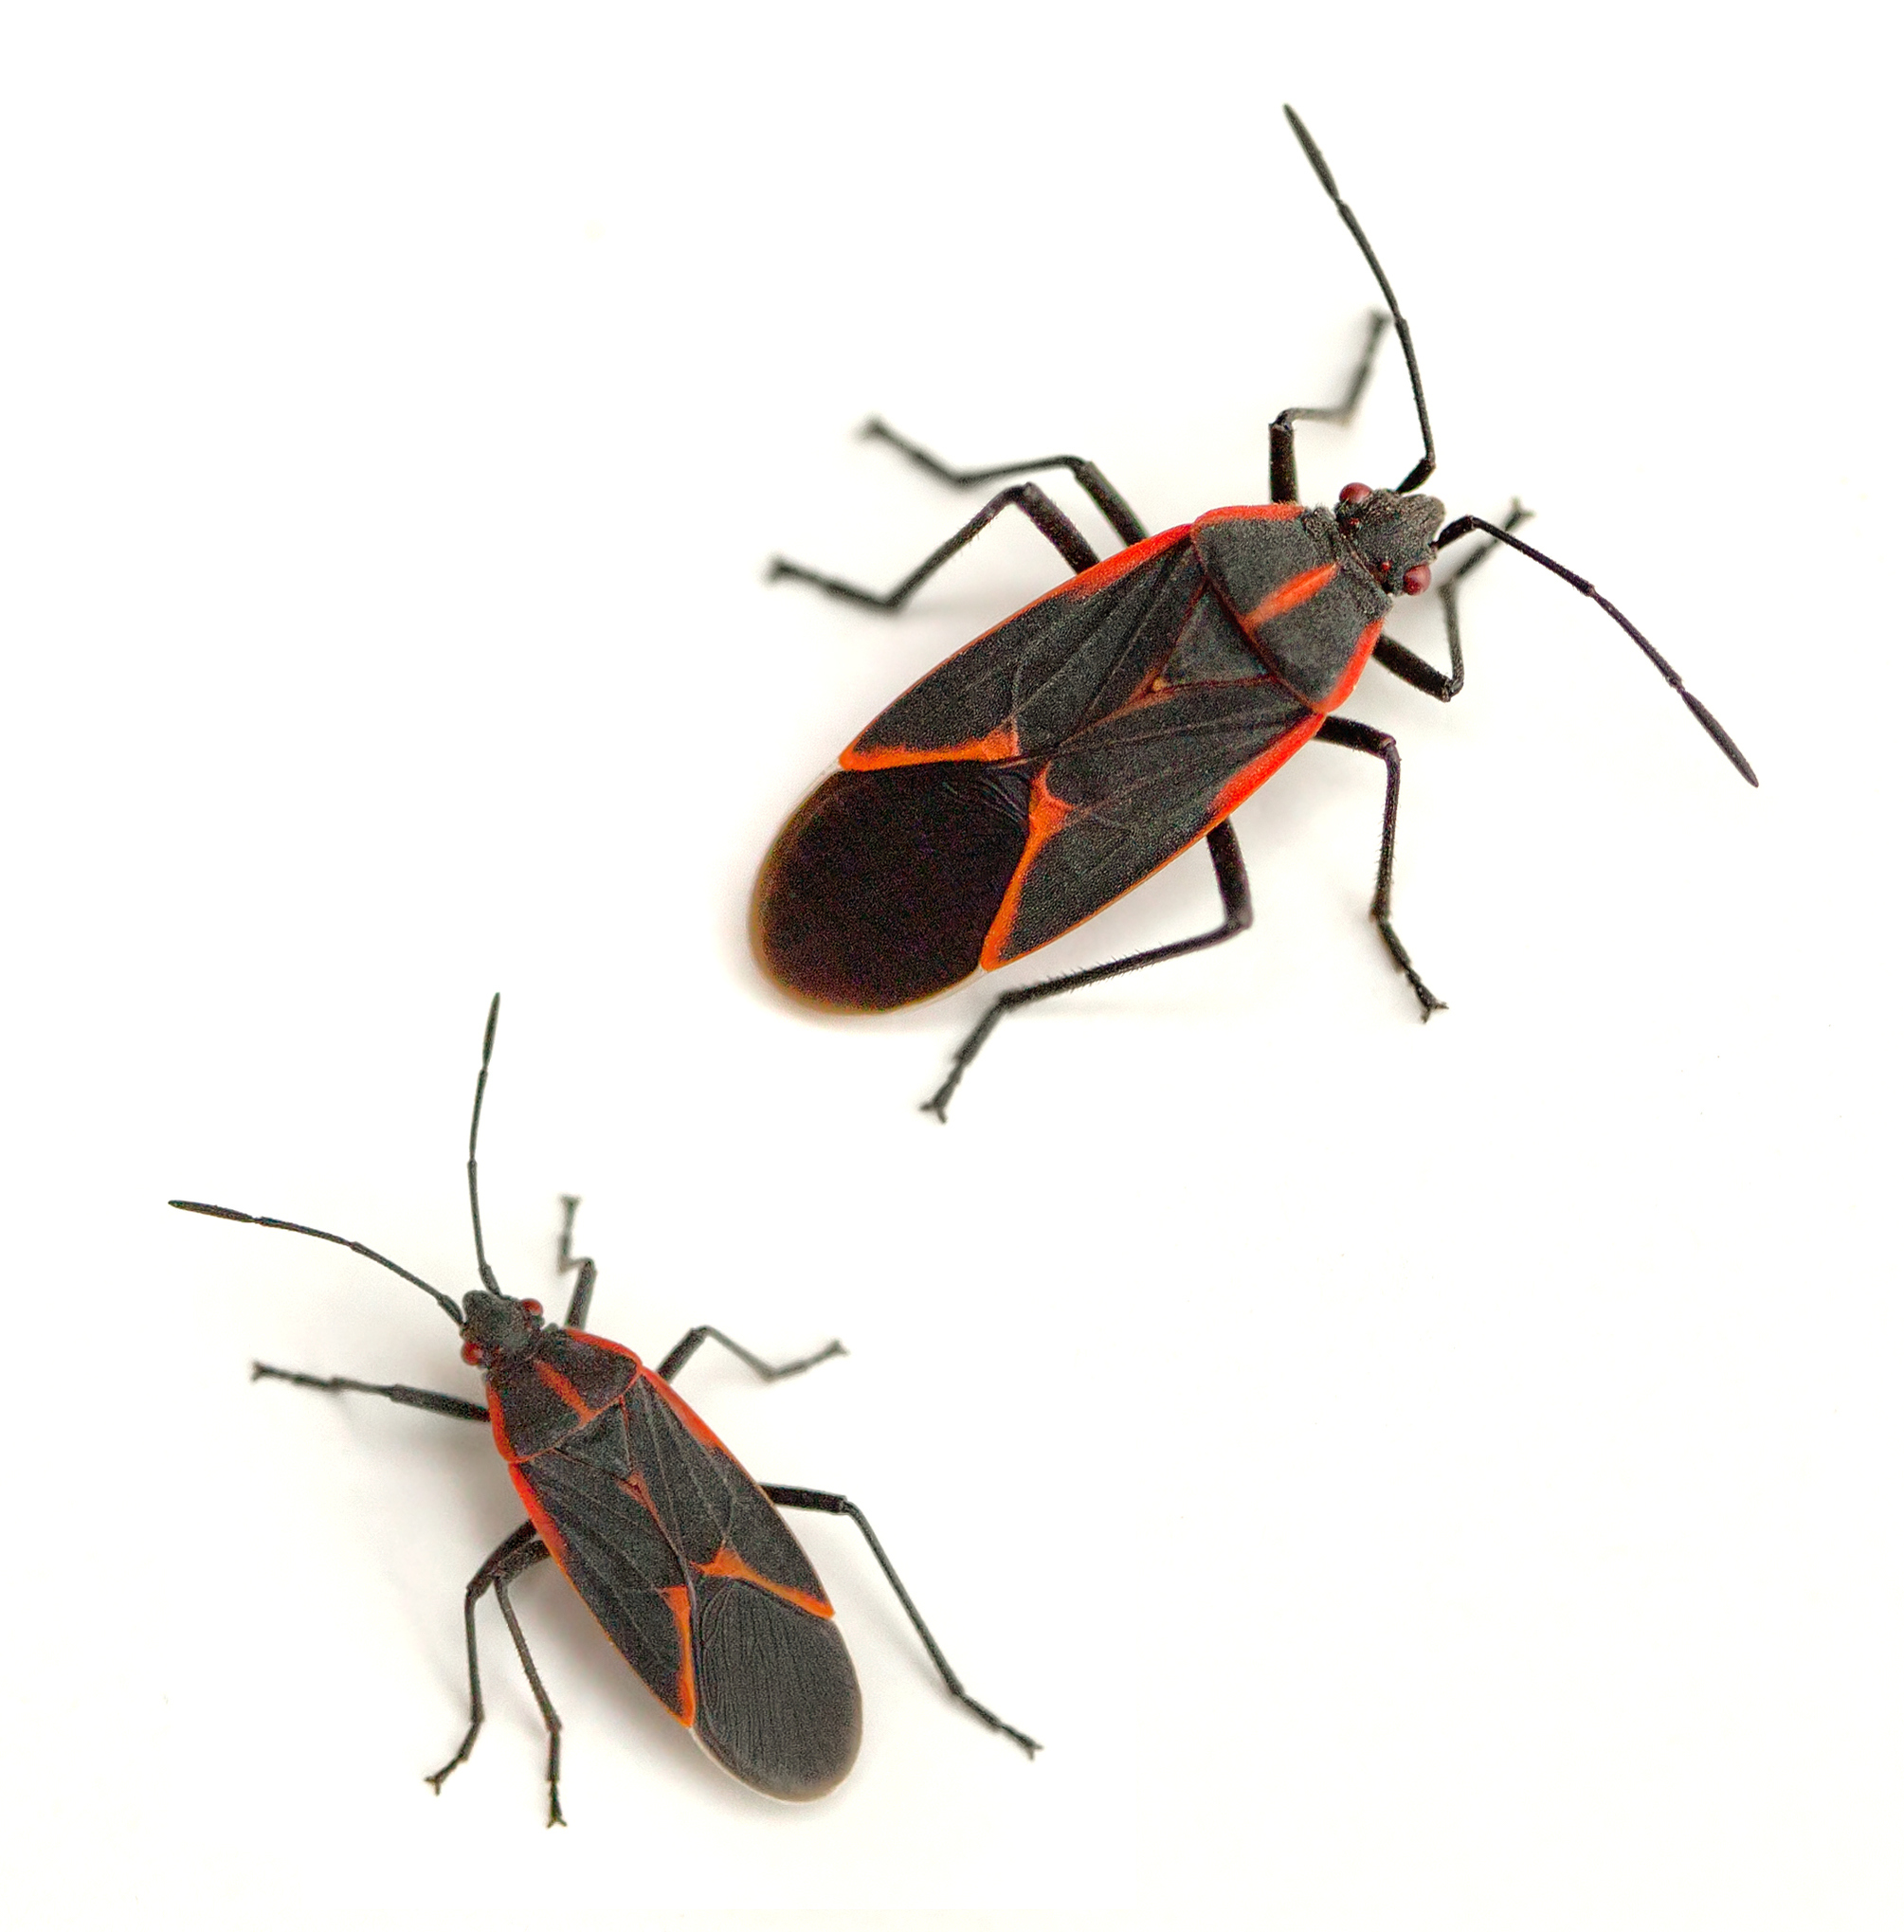 Eastern boxelder bug  Boisea trivittata  on a white background. Boxelder Bugs  Red and black bugs Canton Termite   Pest Control